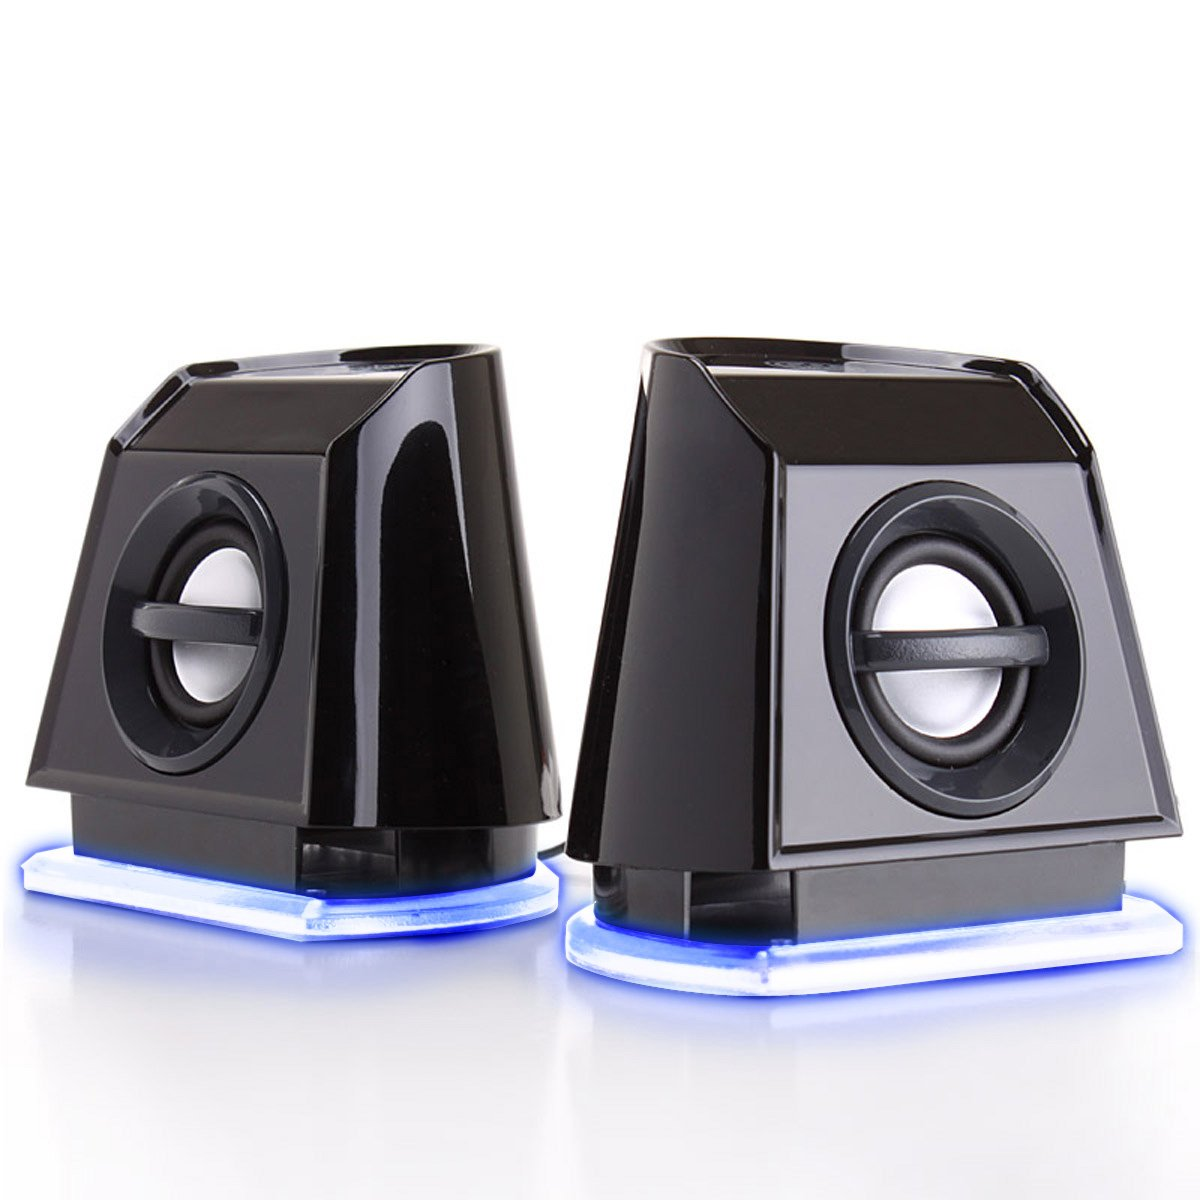 GOgroove 2MX LED Computer Speakers with Passive Subwoofer, Blue Glowing Lights and Volume Control - 3.5mm Audio Input Connection, USB Powered for Desktop and Laptop Computers